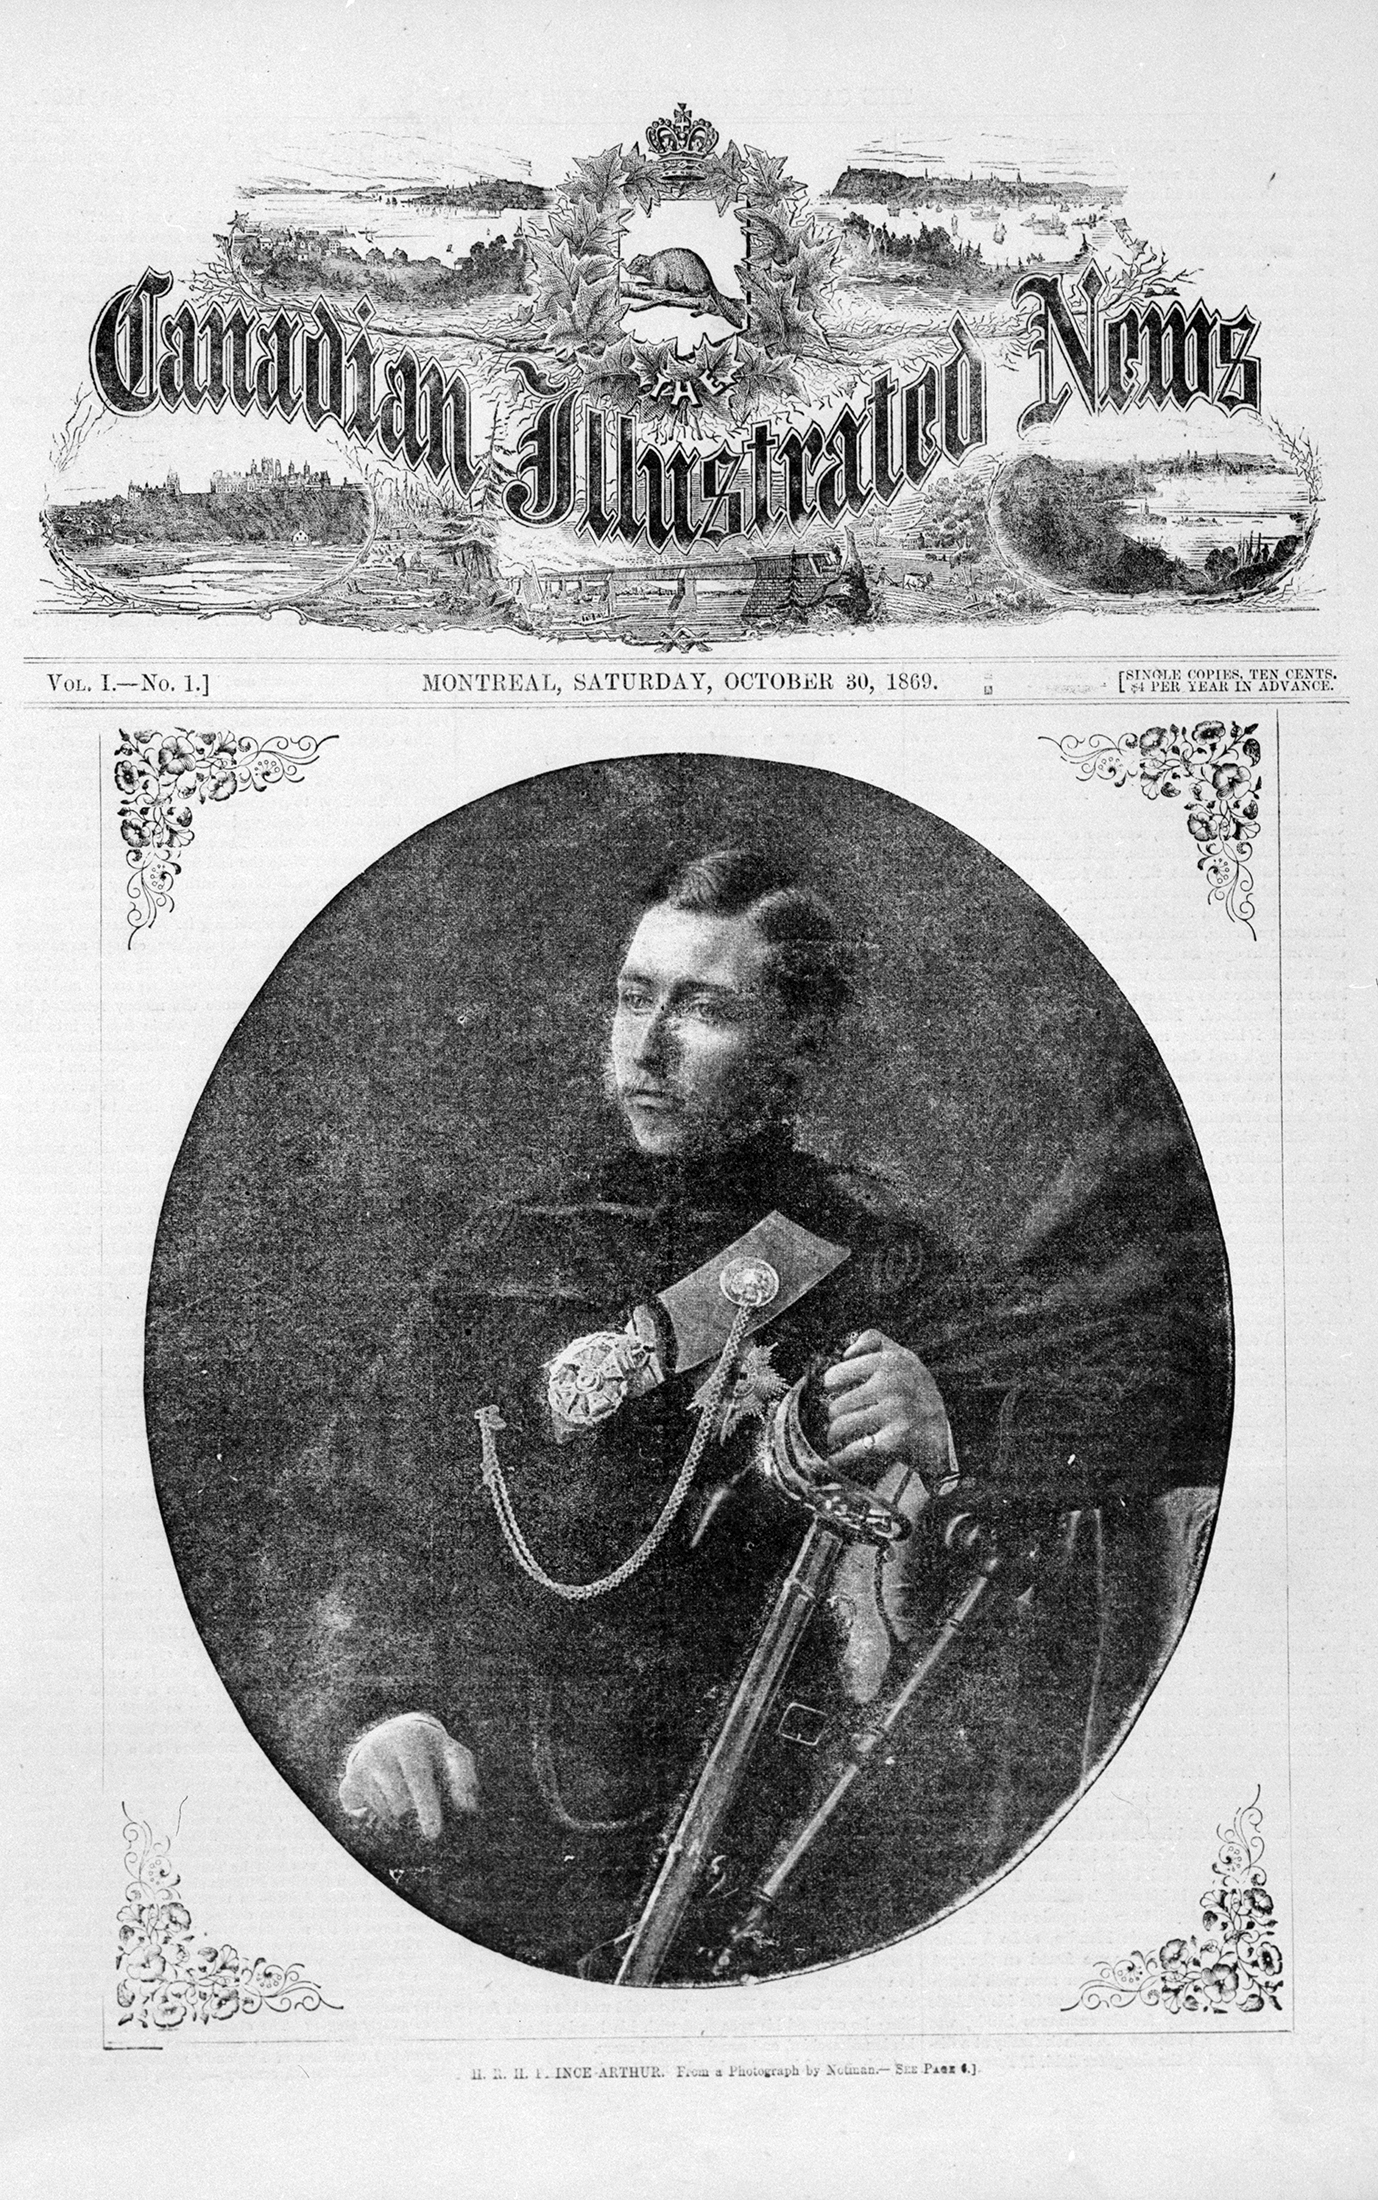 This Canadian Illustrated News cover is illustrated with a photographic portrait of Prince Arthur in military uniform, his left hand resting on the hilt of a sword. The oval image occupies the centre of the page.